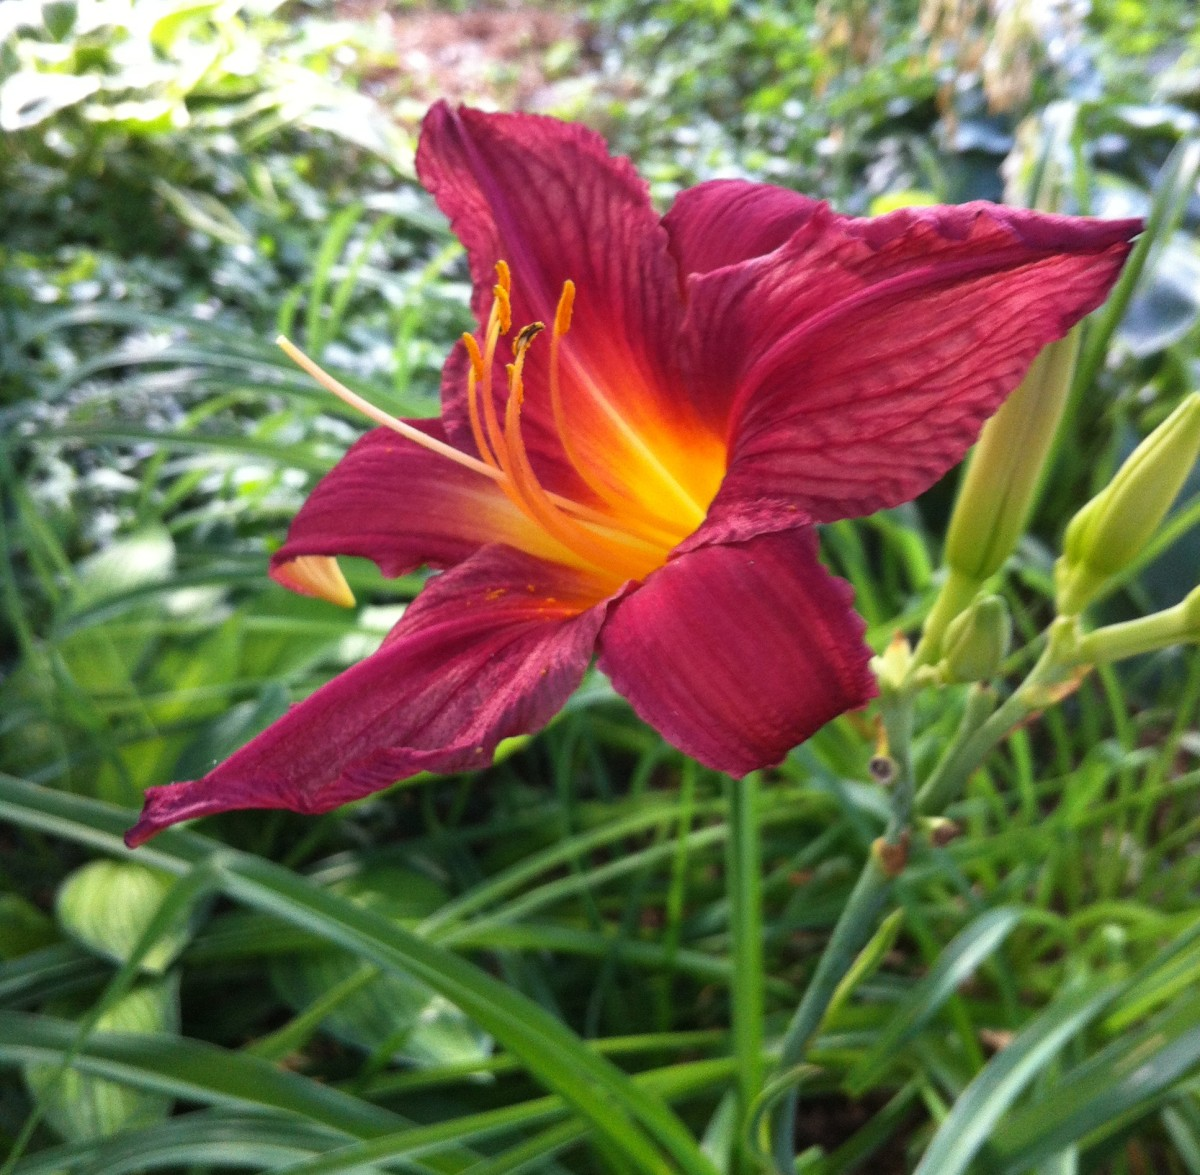 Burgundy and yellow daylily in my front yard garden.